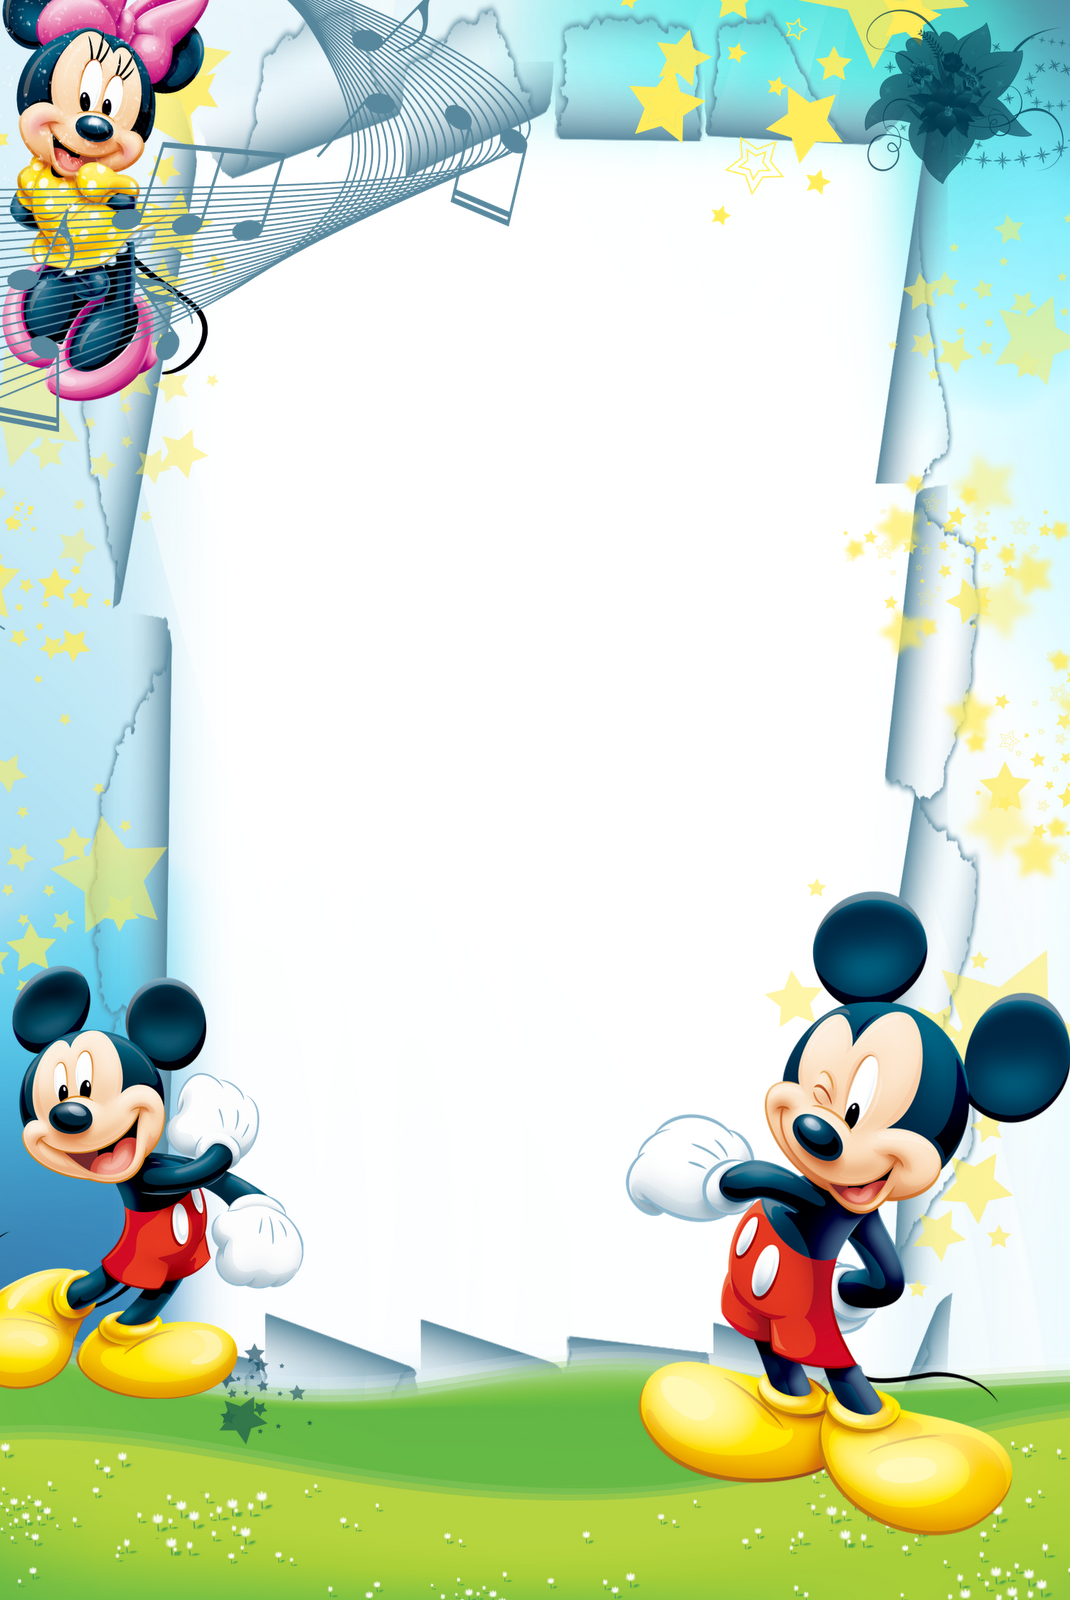 Disney border png. Photoshop frame frames infantil